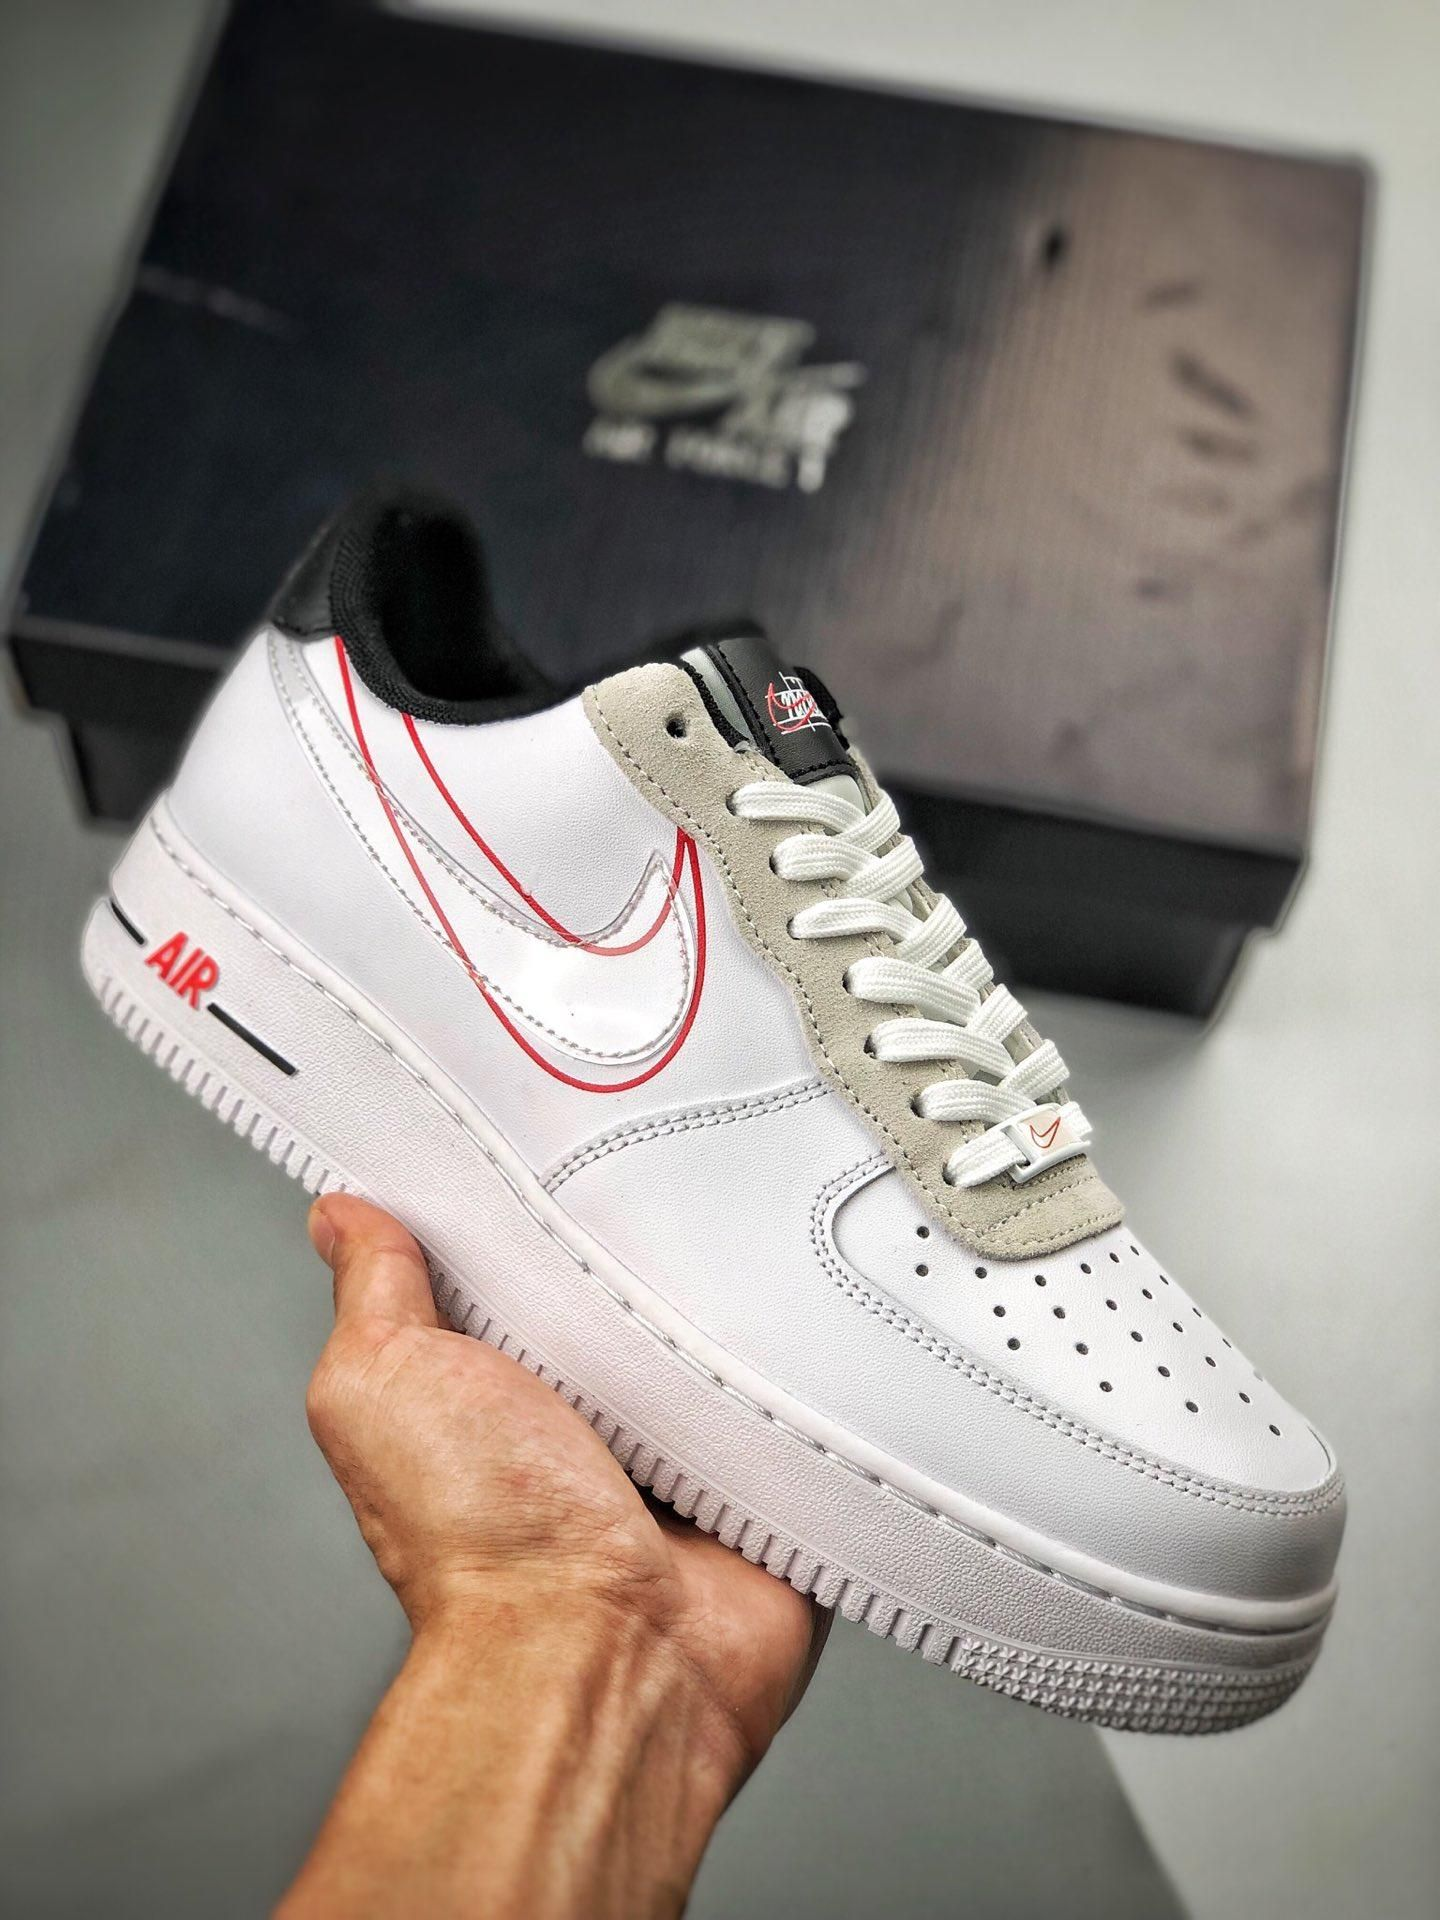 NIKE AIR FORCE 1 | Nike air force, Nike, Nike shoes